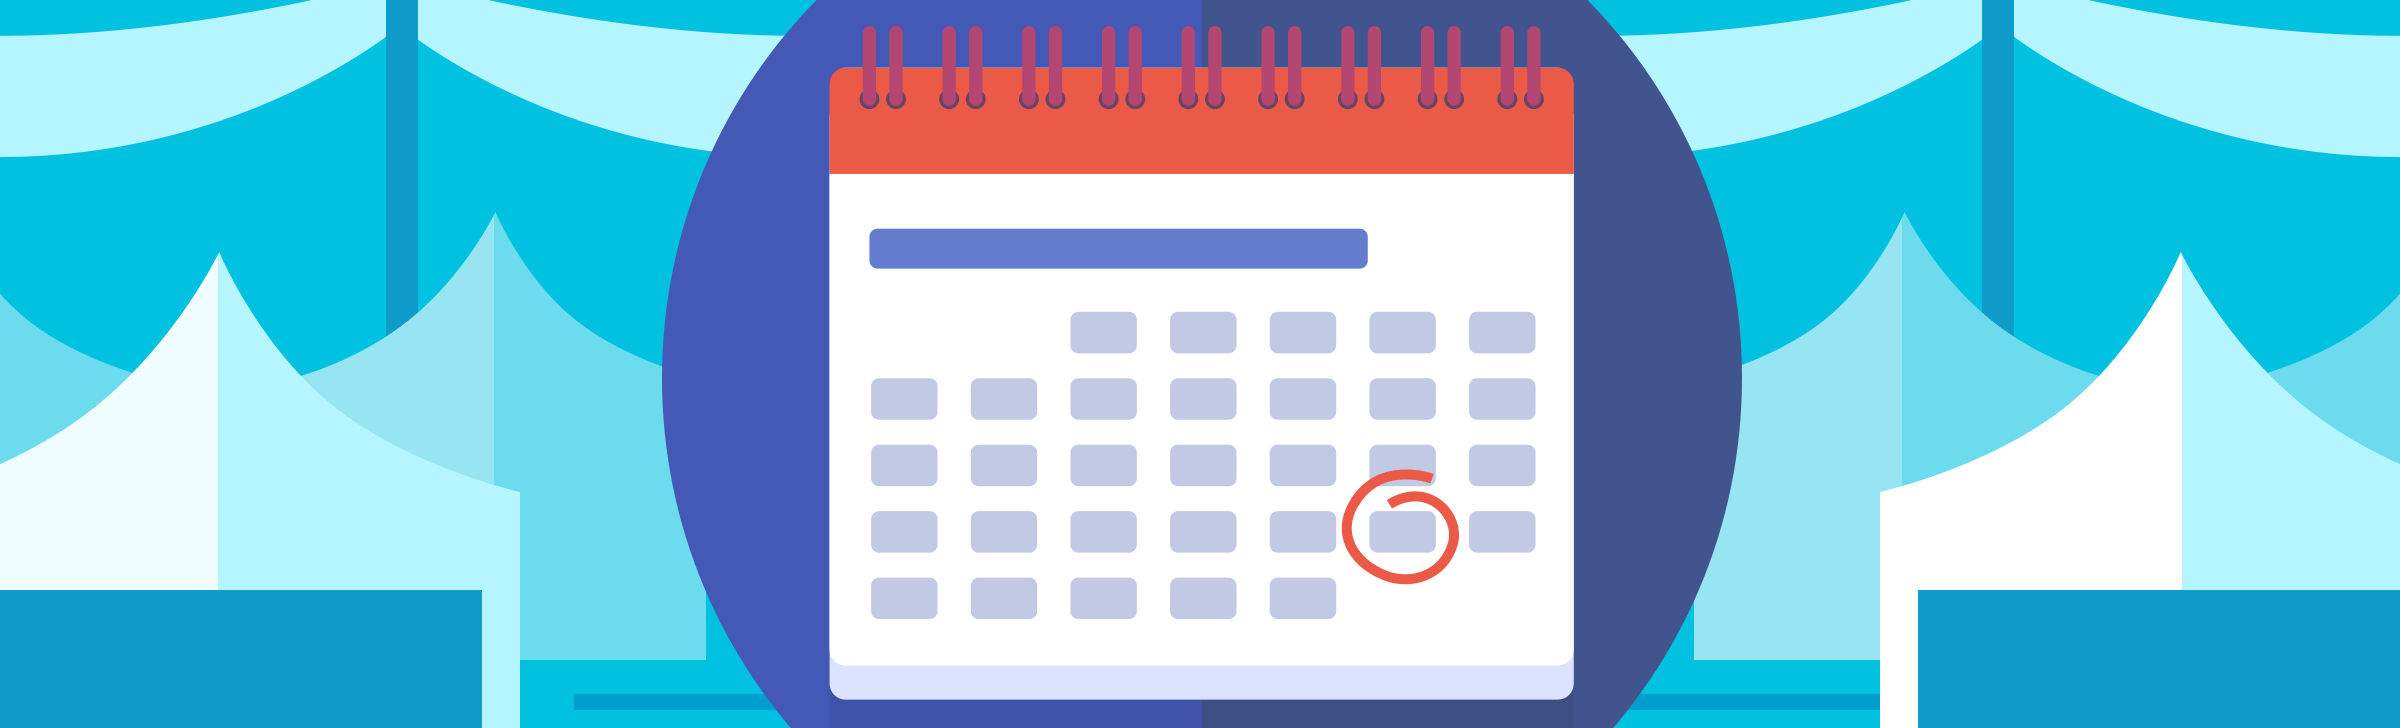 illustration of calendar with day circled